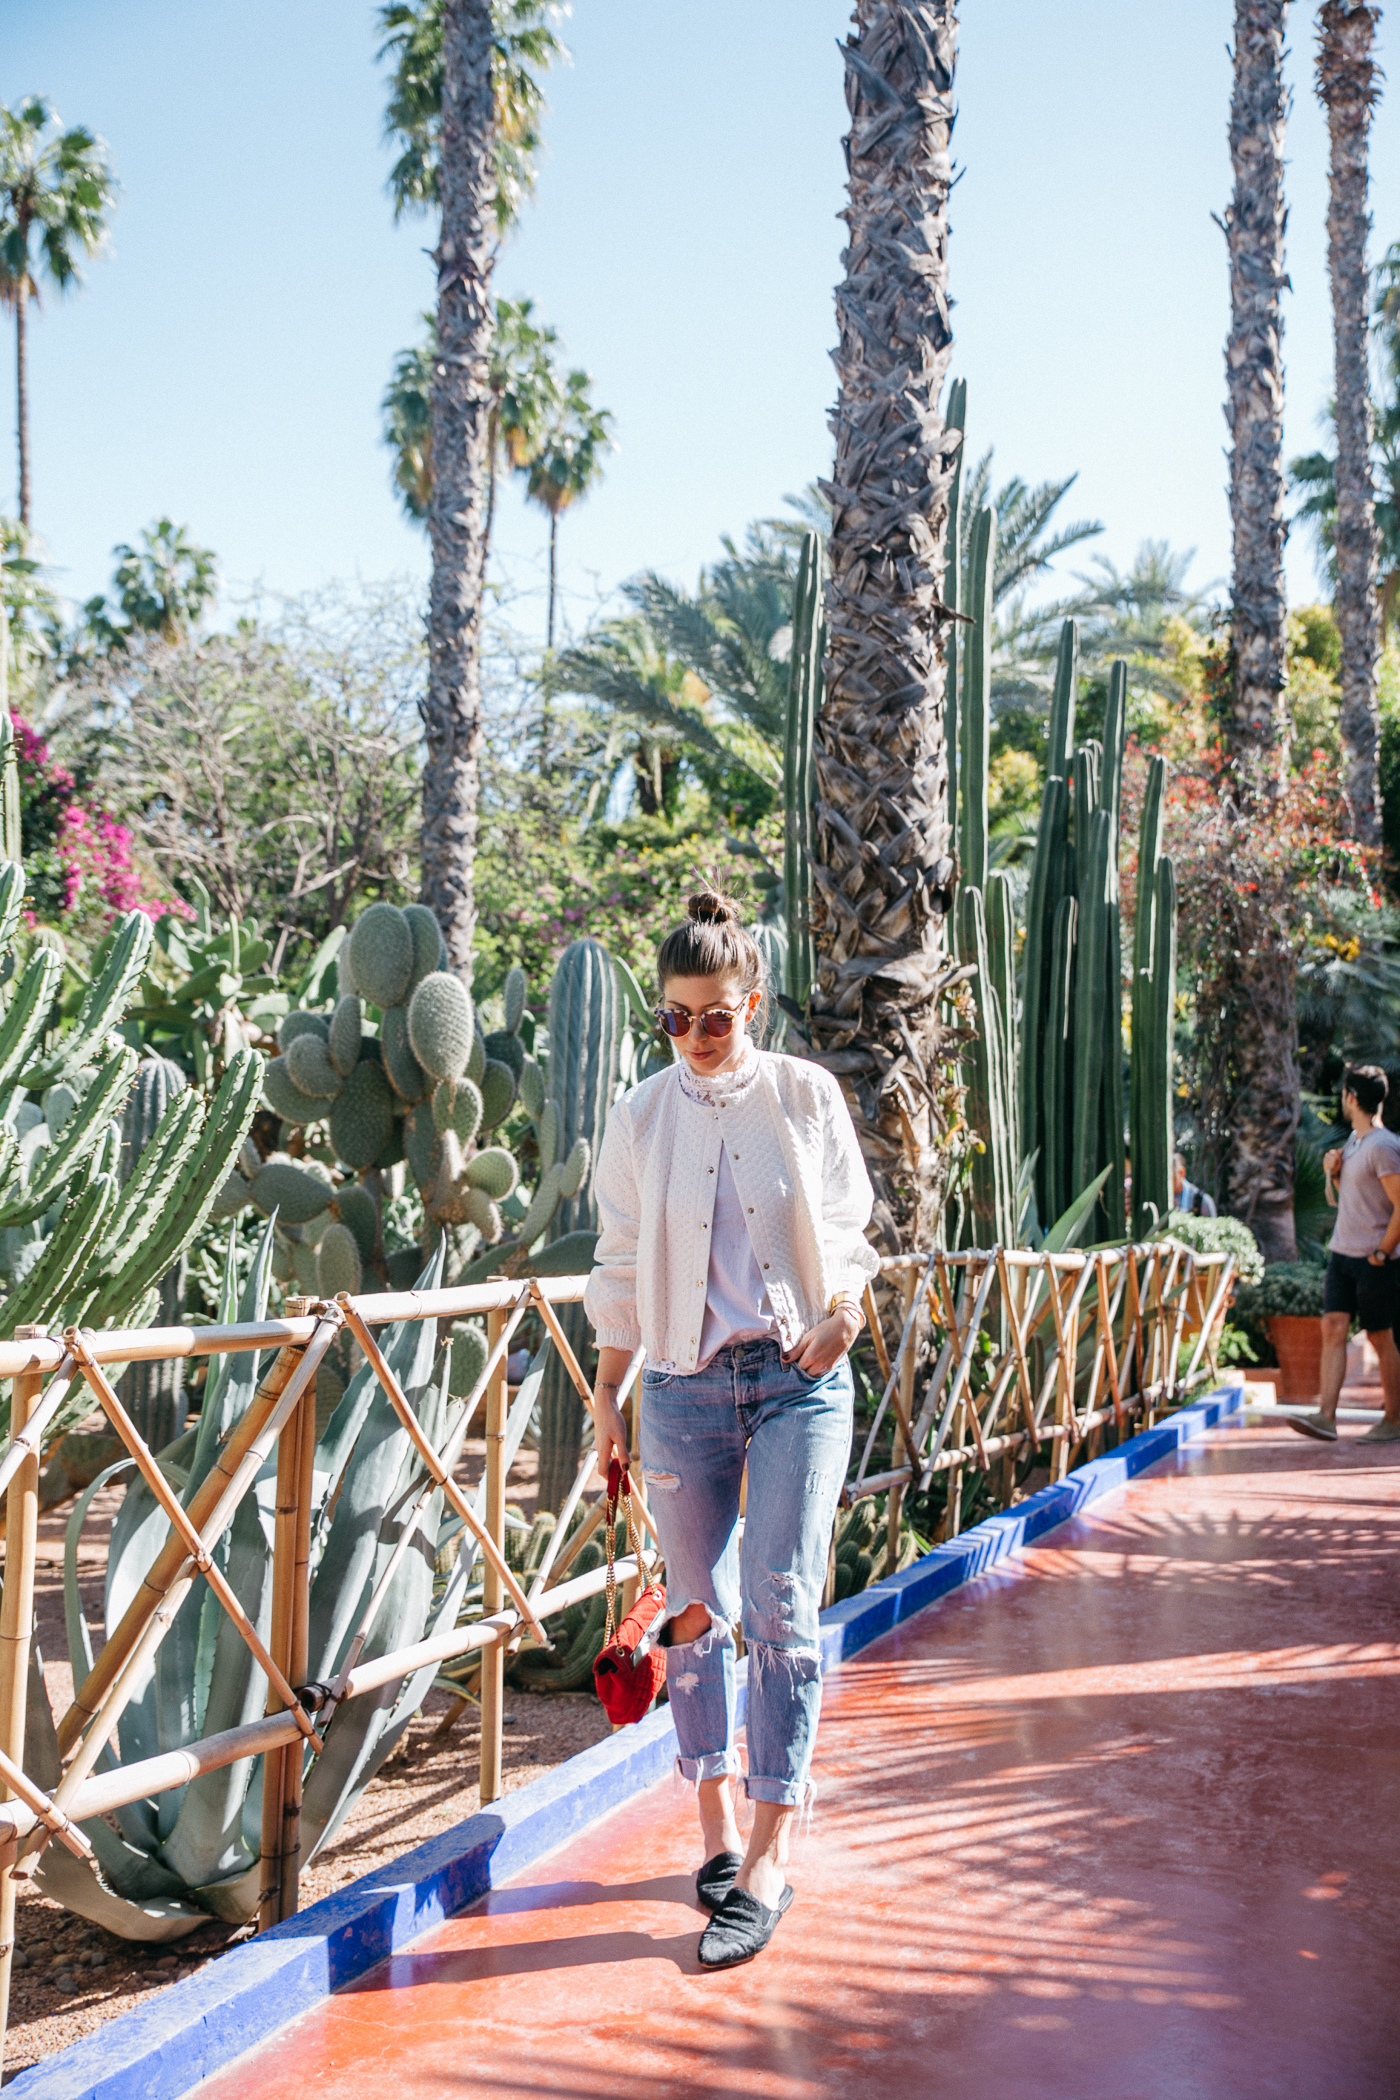 Le jardin majorelle marrakech yves saint laurent garden for Cafe le jardin marrakech